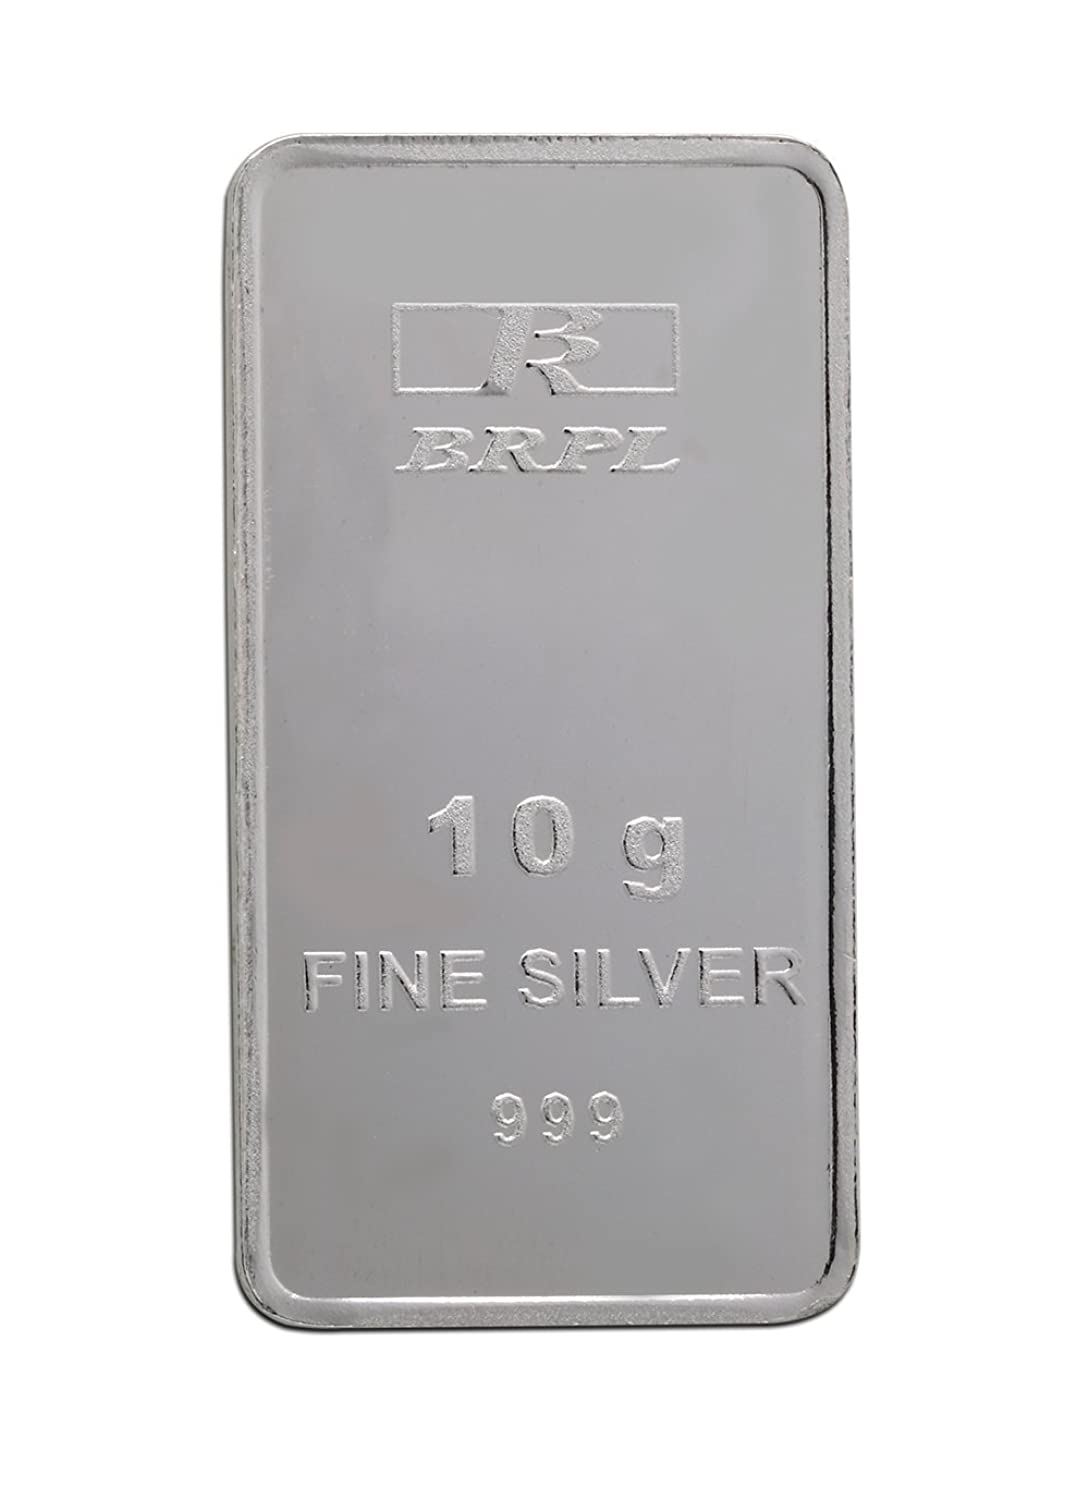 999 Purity Silver Bar 10 Gram